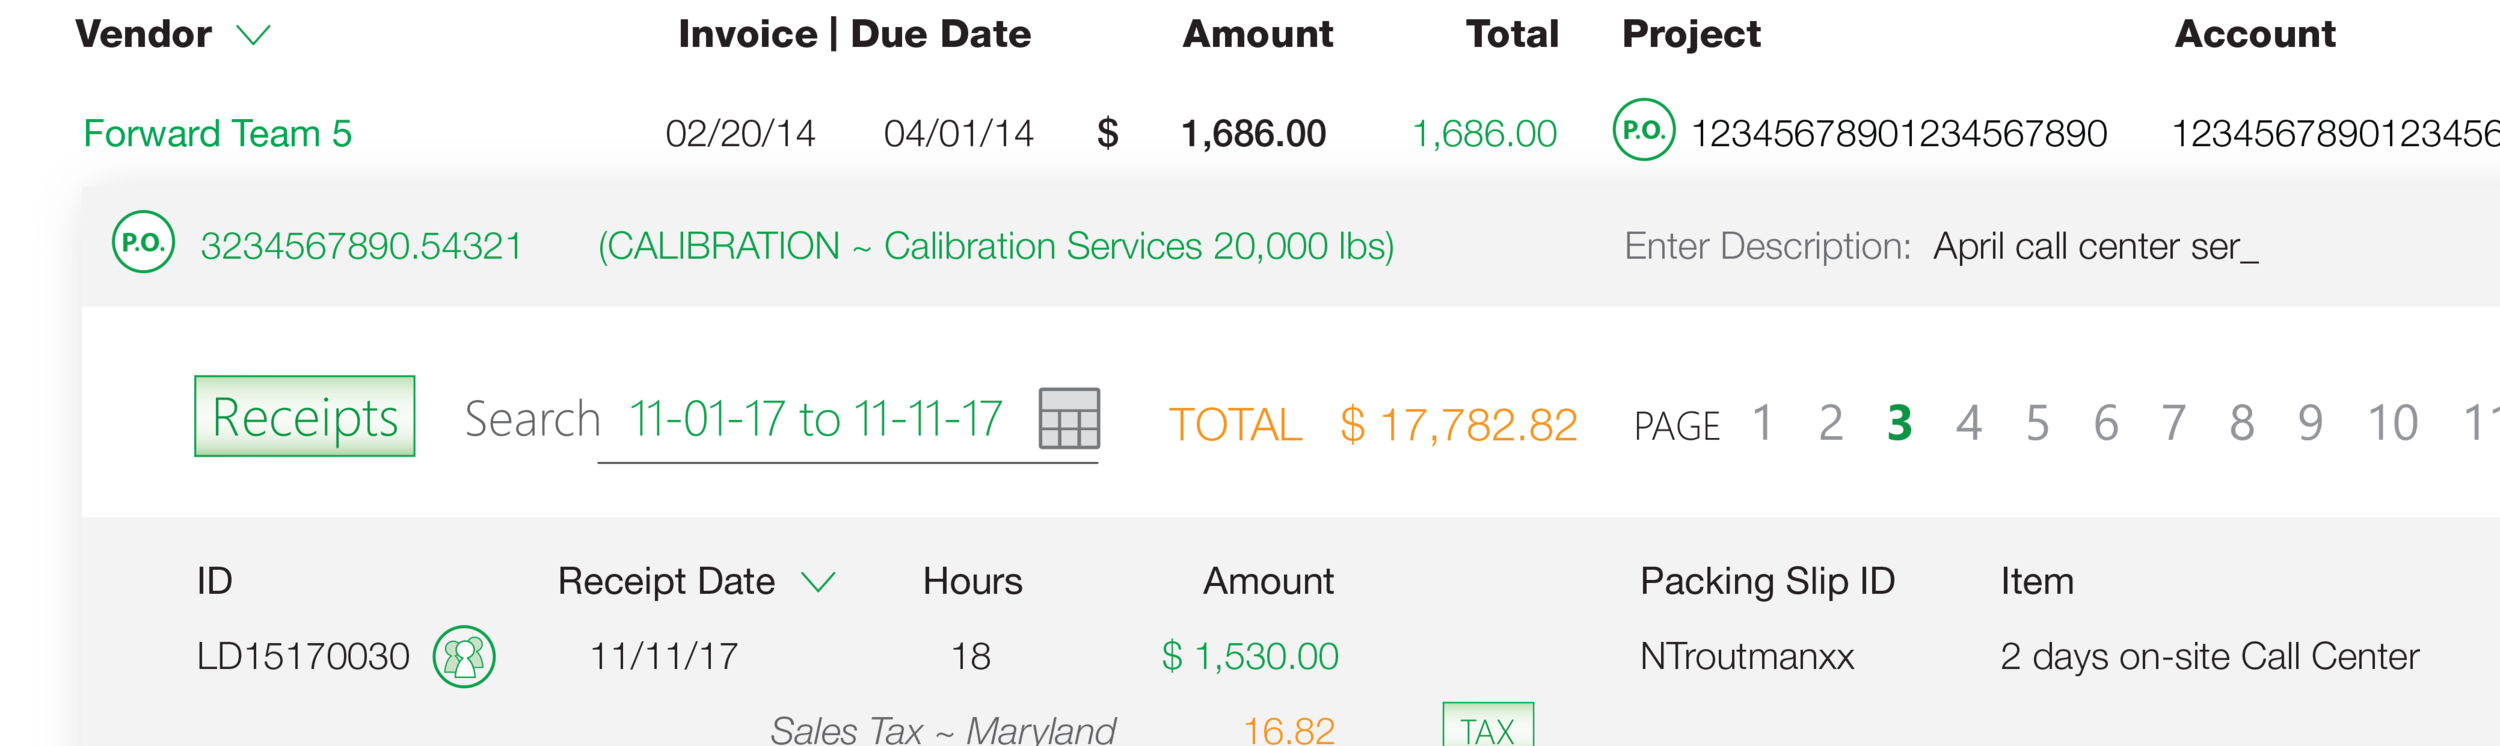 Automatically create vendor invoices from subcontractor timesheets.  With optional Subcontractor Timesheets, AutoMate matches labor hours with Purchase Orders, and creates invoice vouchers directly in Costpoint.